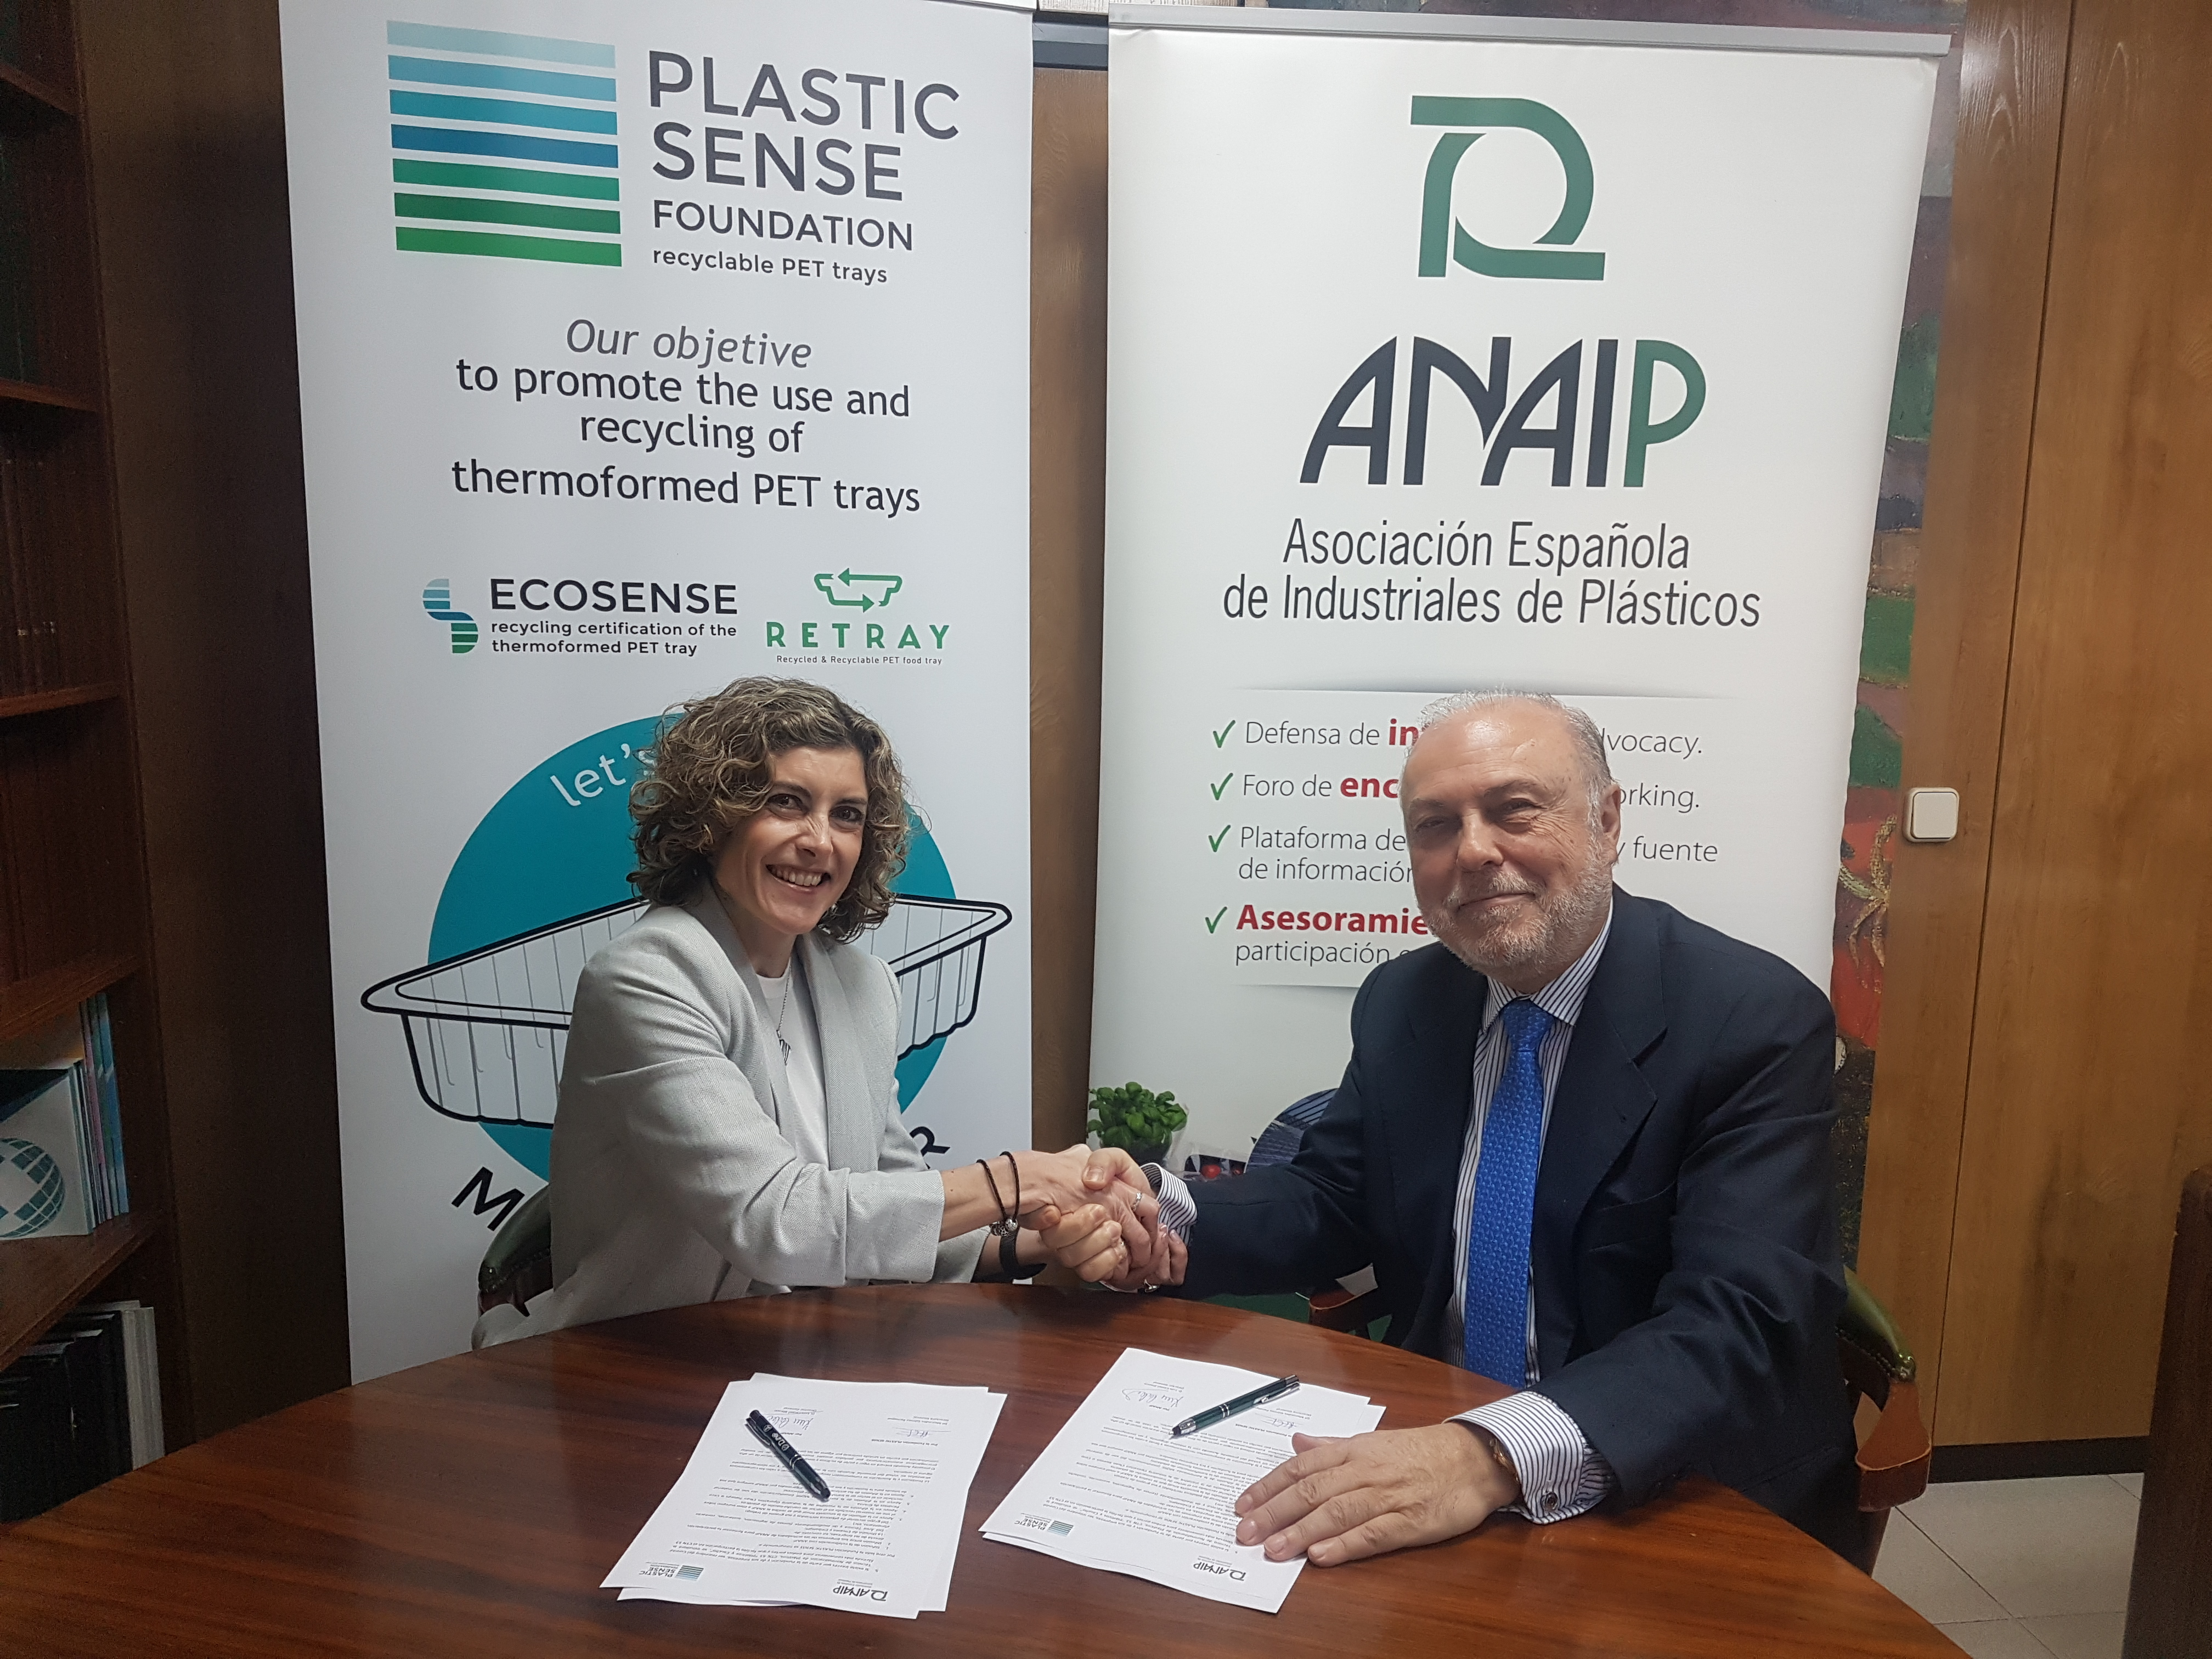 ANAIP and the PLASTIC SENSE Foundation have signed an agreement to support recycling promotion